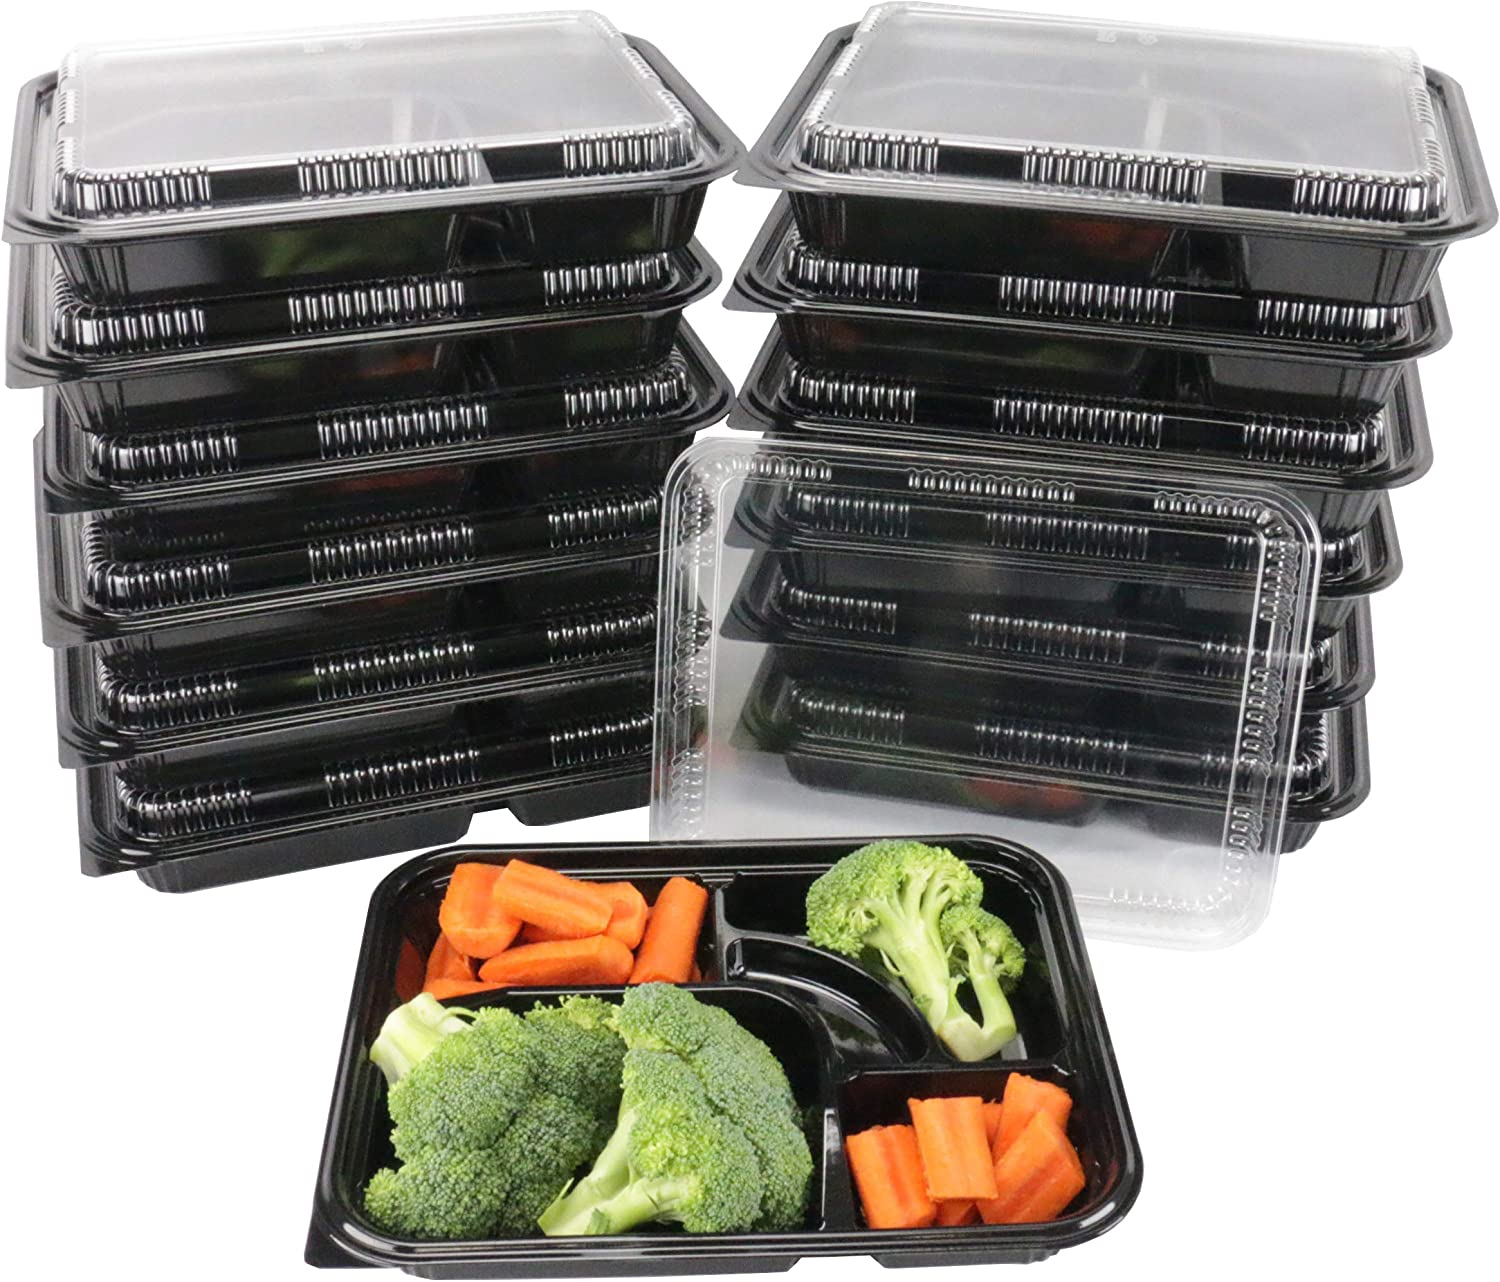 EquipmentBlvd Black Plastic 5 Compartment Japanese Bento Box Food Container with Clear Lid, TZ-306 (200 count)